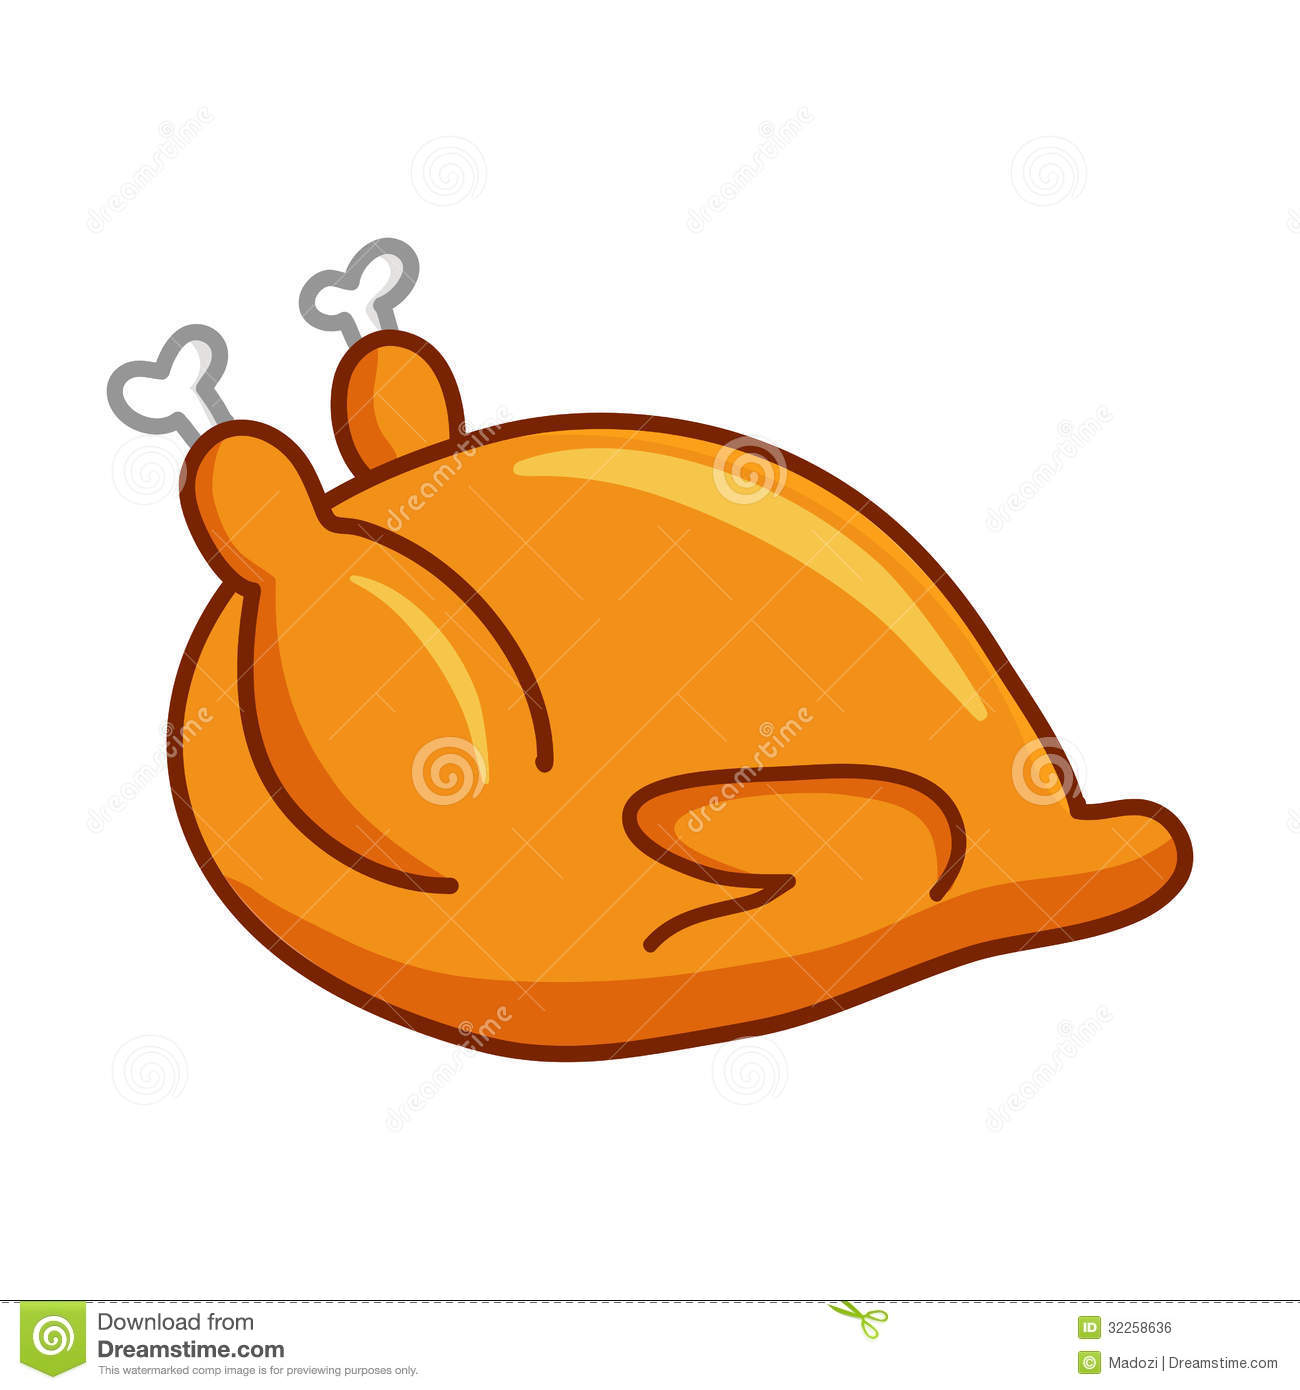 clipart chicken cooked - photo #4